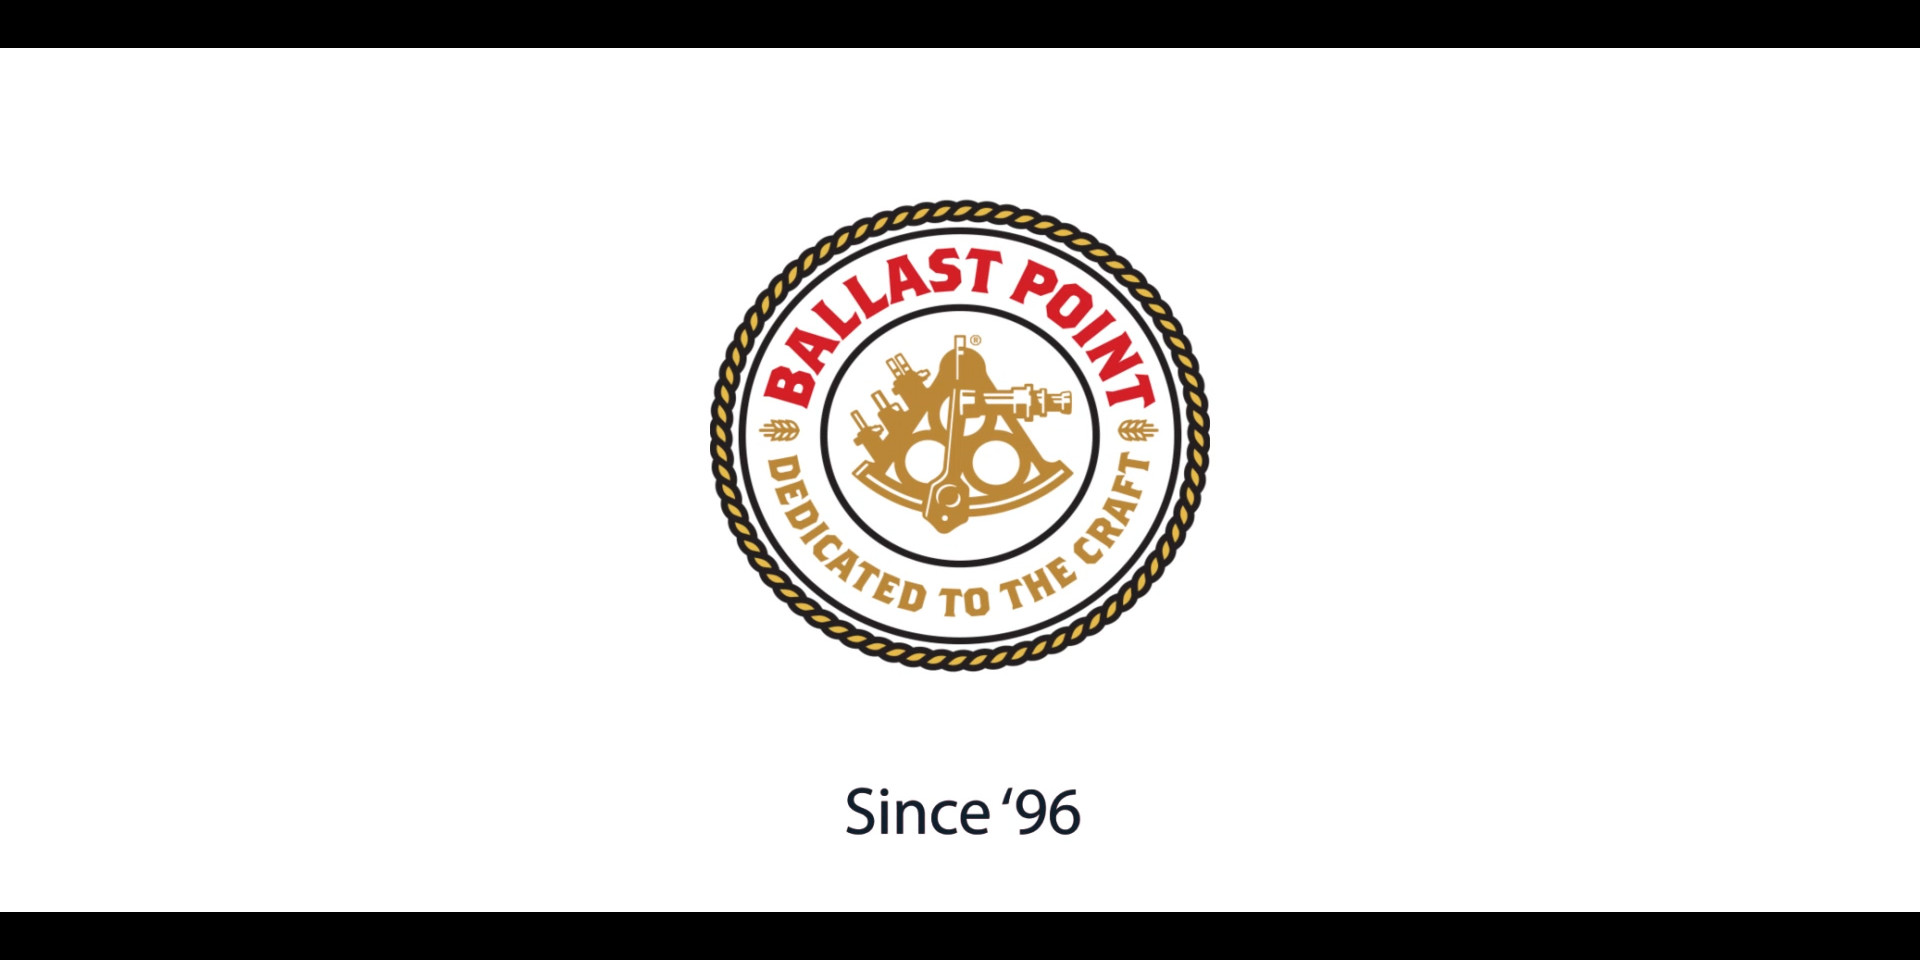 BALLAST POINT LONG BEACH